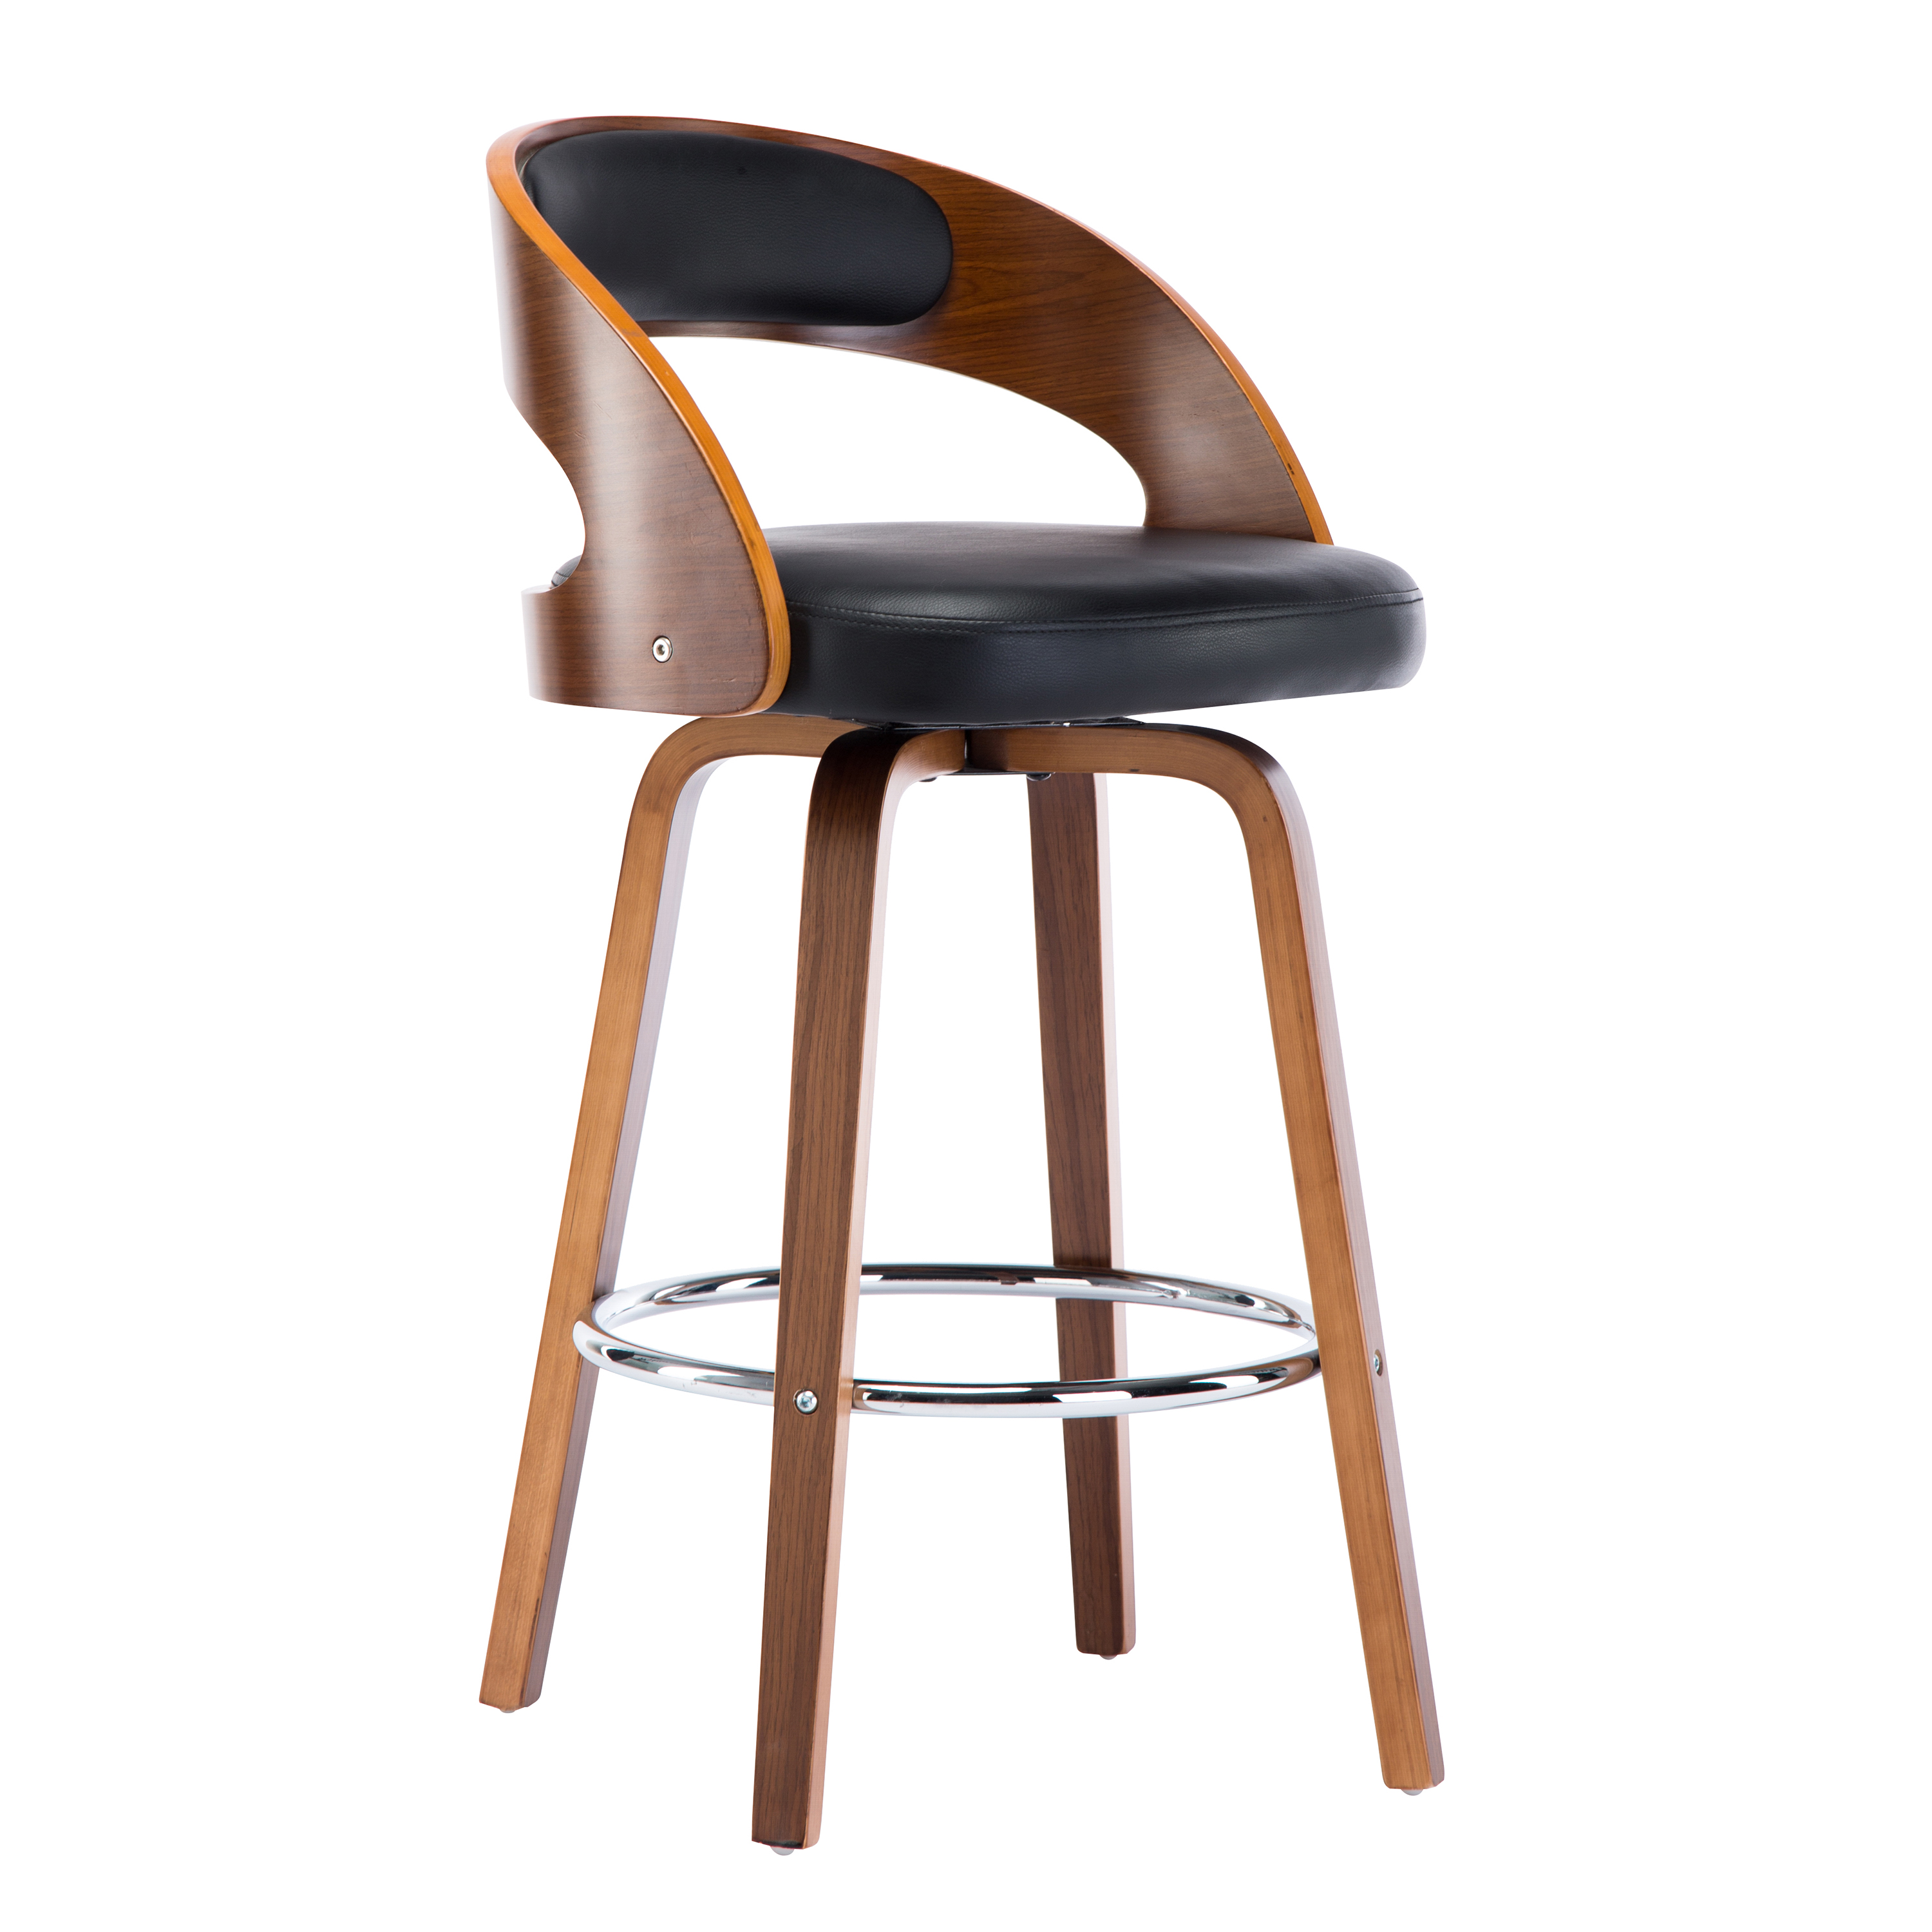 Wood And Black Faux Leather Mid Century Modern Swivel Barstool With